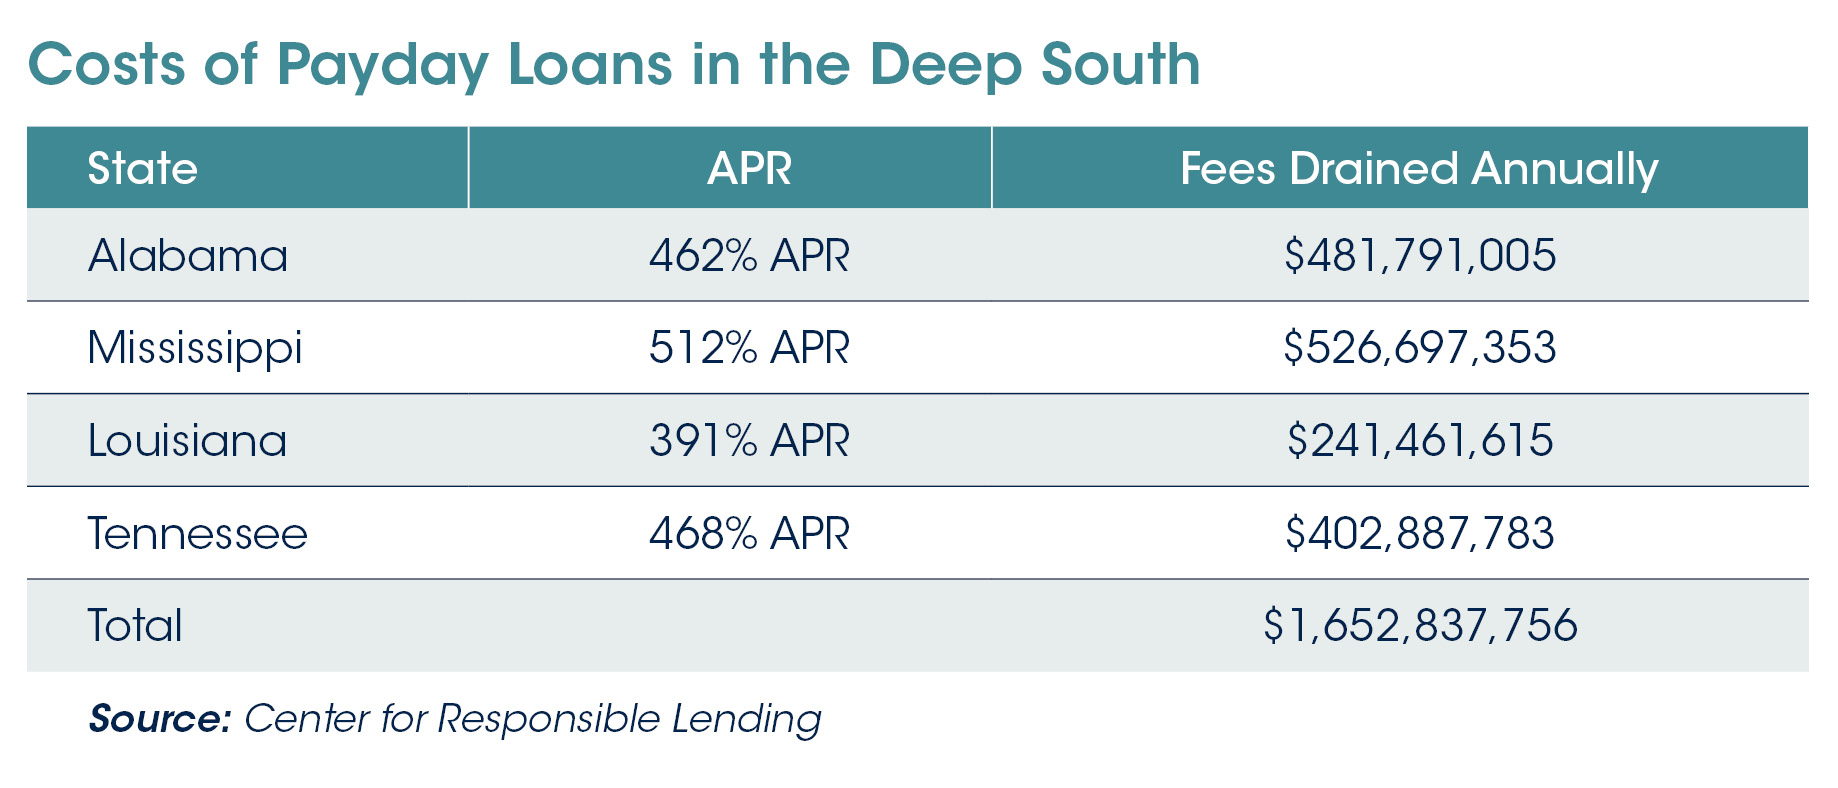 Costs of Payday Loans